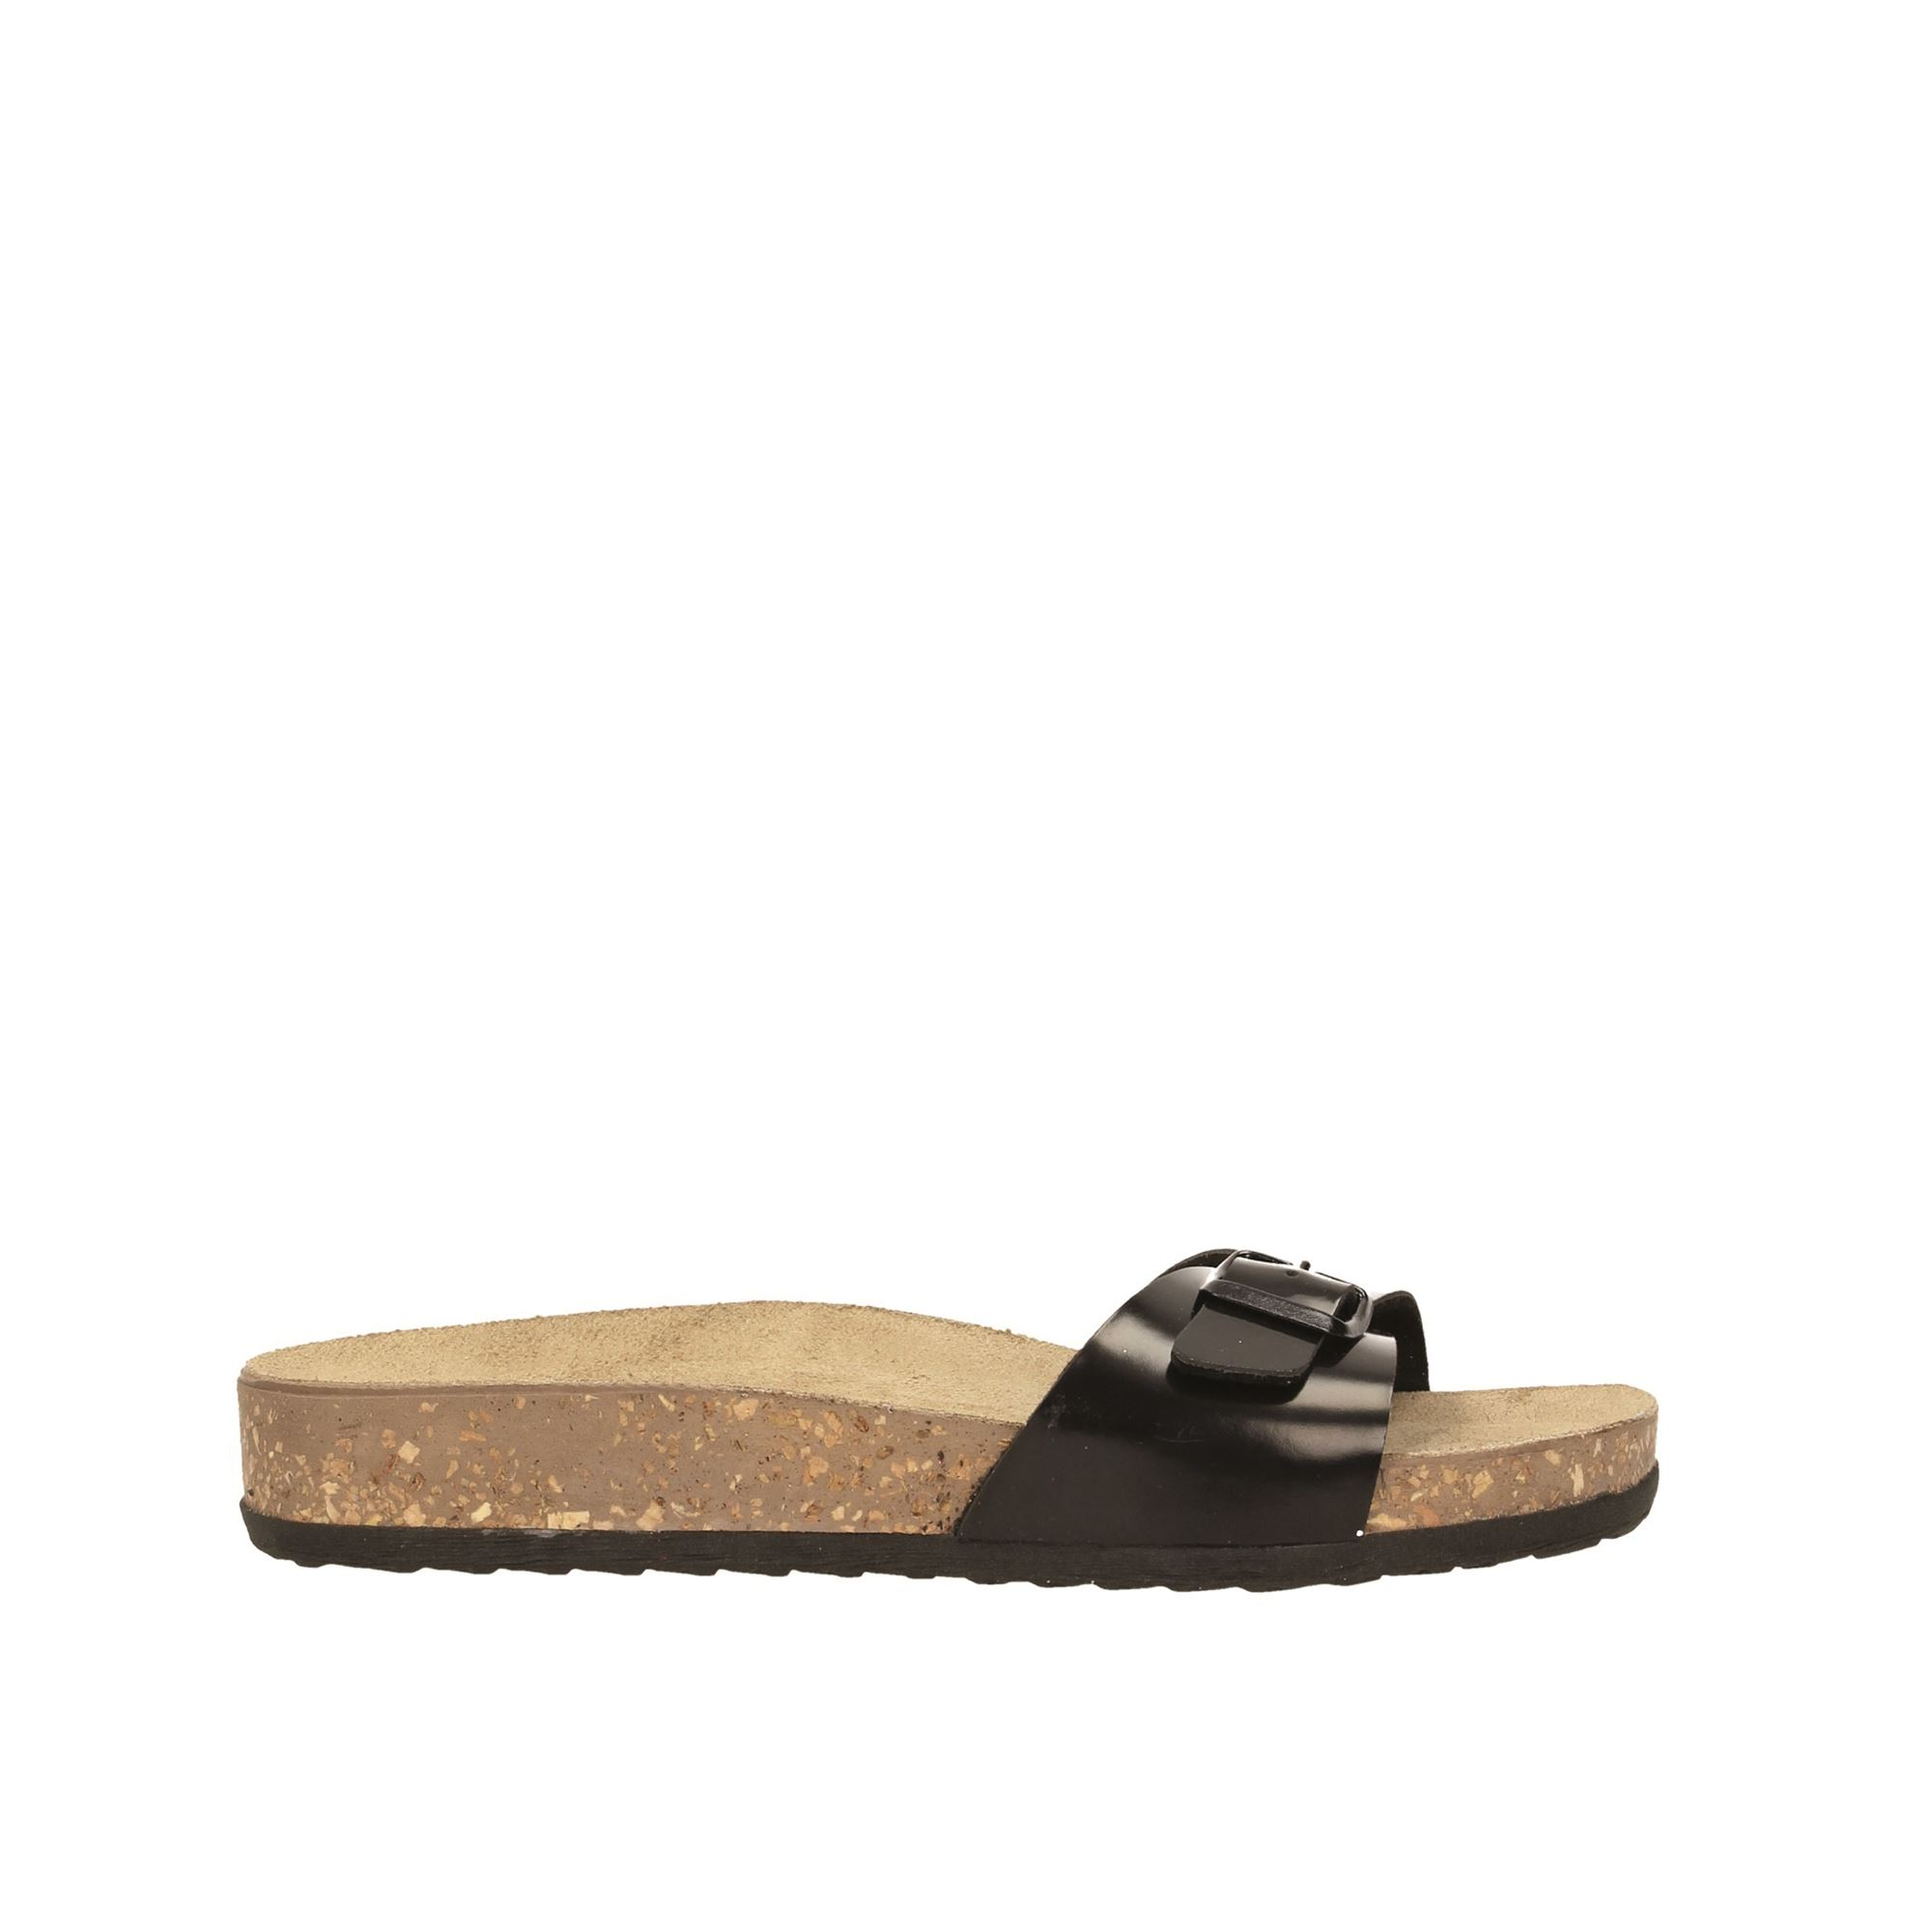 Tata Italia Shoes Woman Sandali Black 261150/E18